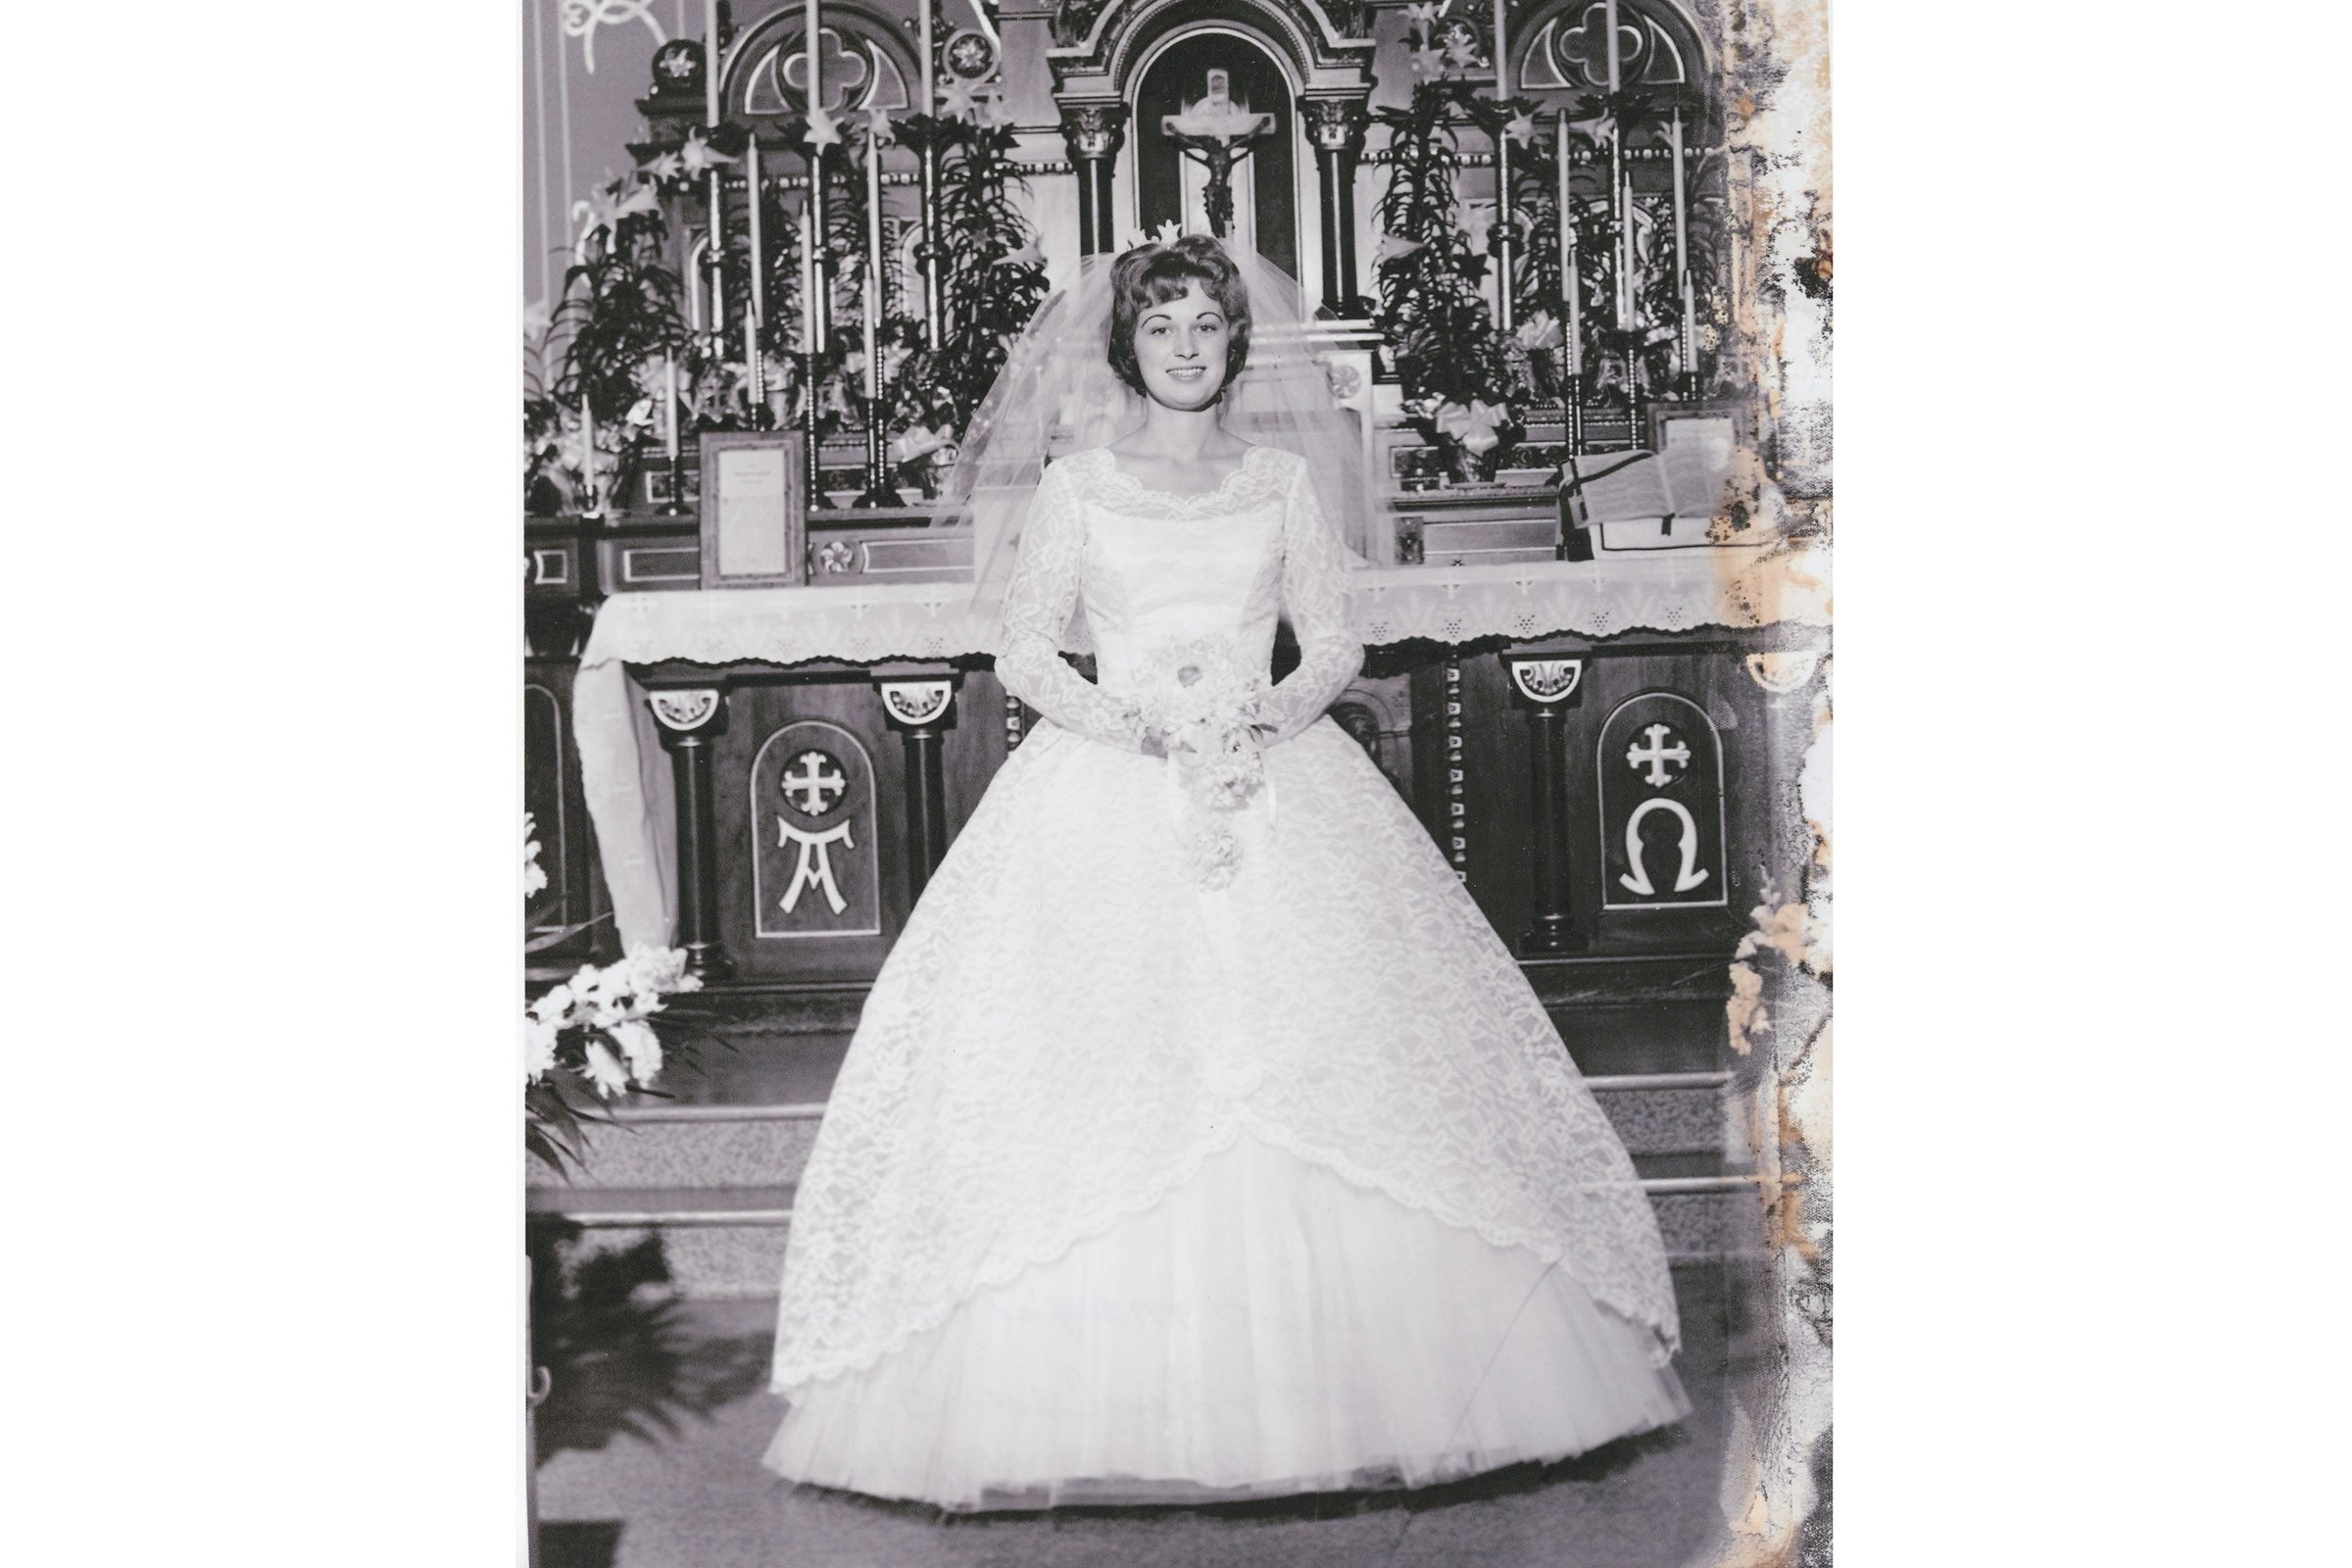 White dress dream meaning - 1962